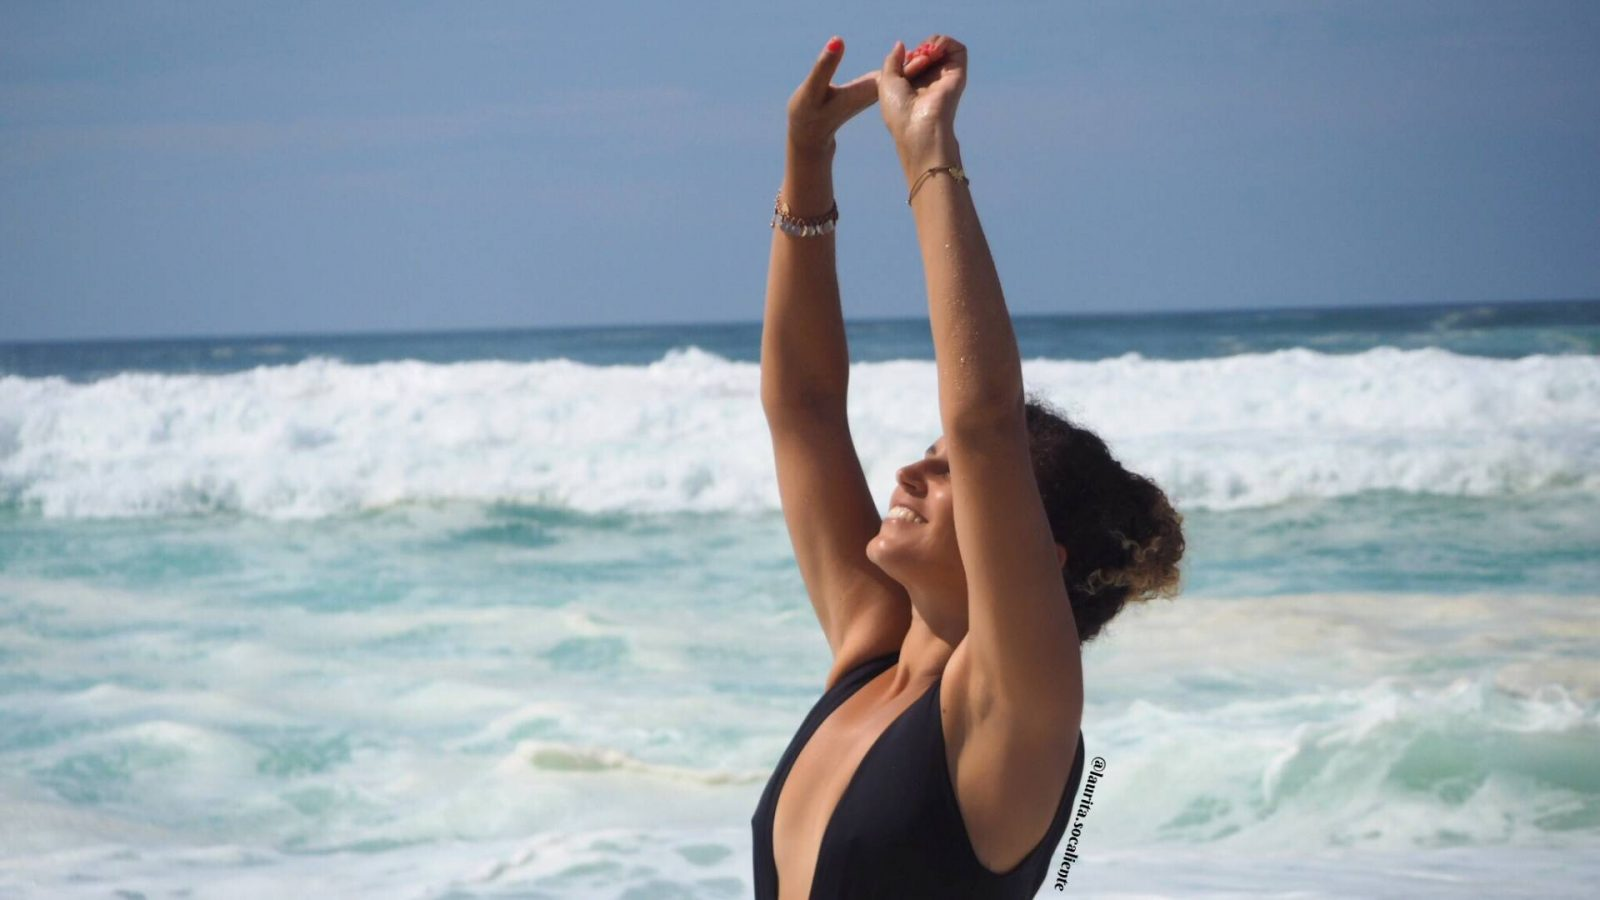 Comment lutter contre le stress ? / How to fight against stress?